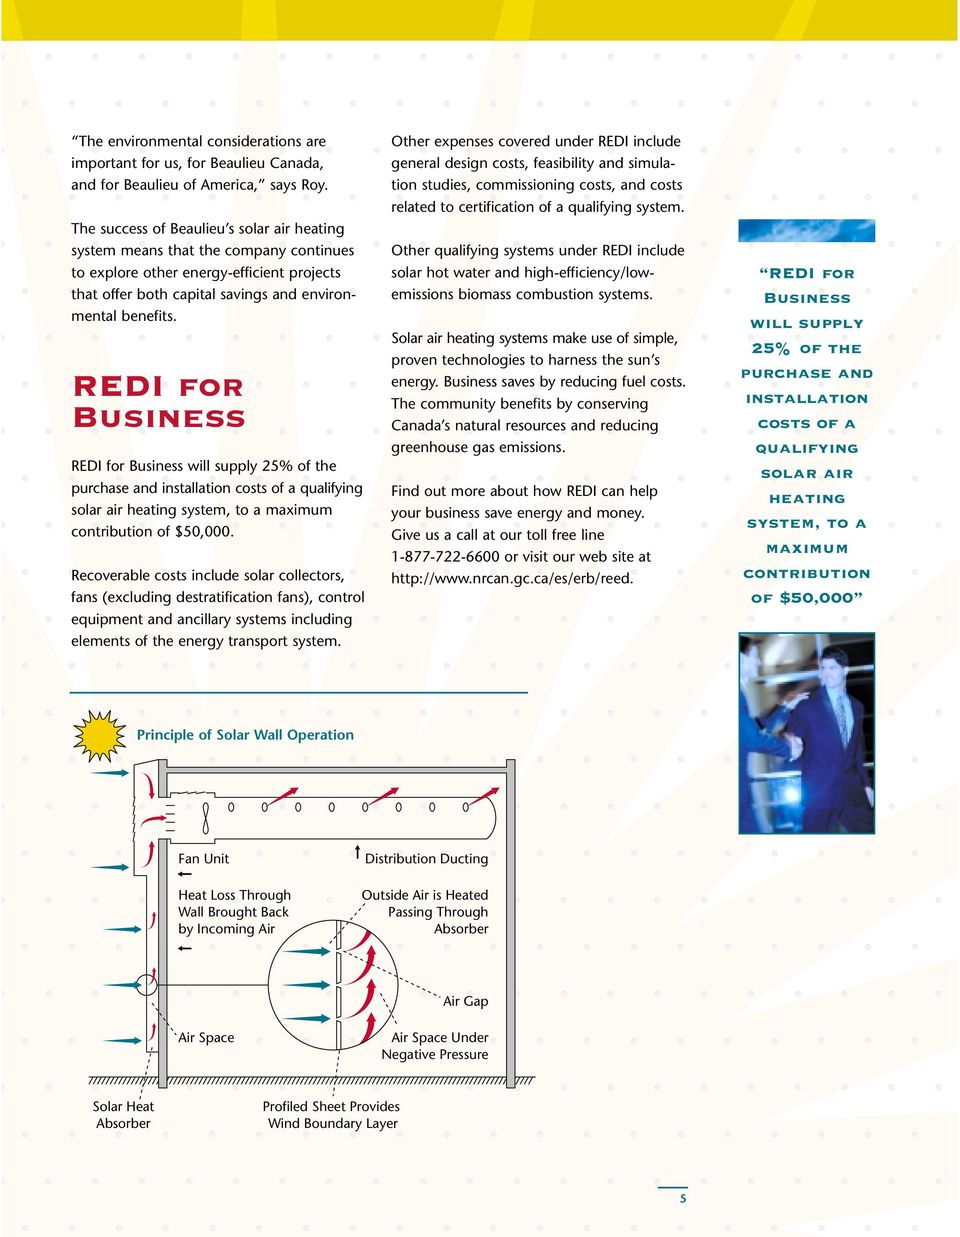 REDI for Business REDI for Business will supply 25% of the purchase and installation costs of a qualifying solar air heating system, to a maximum contribution of $50,000.